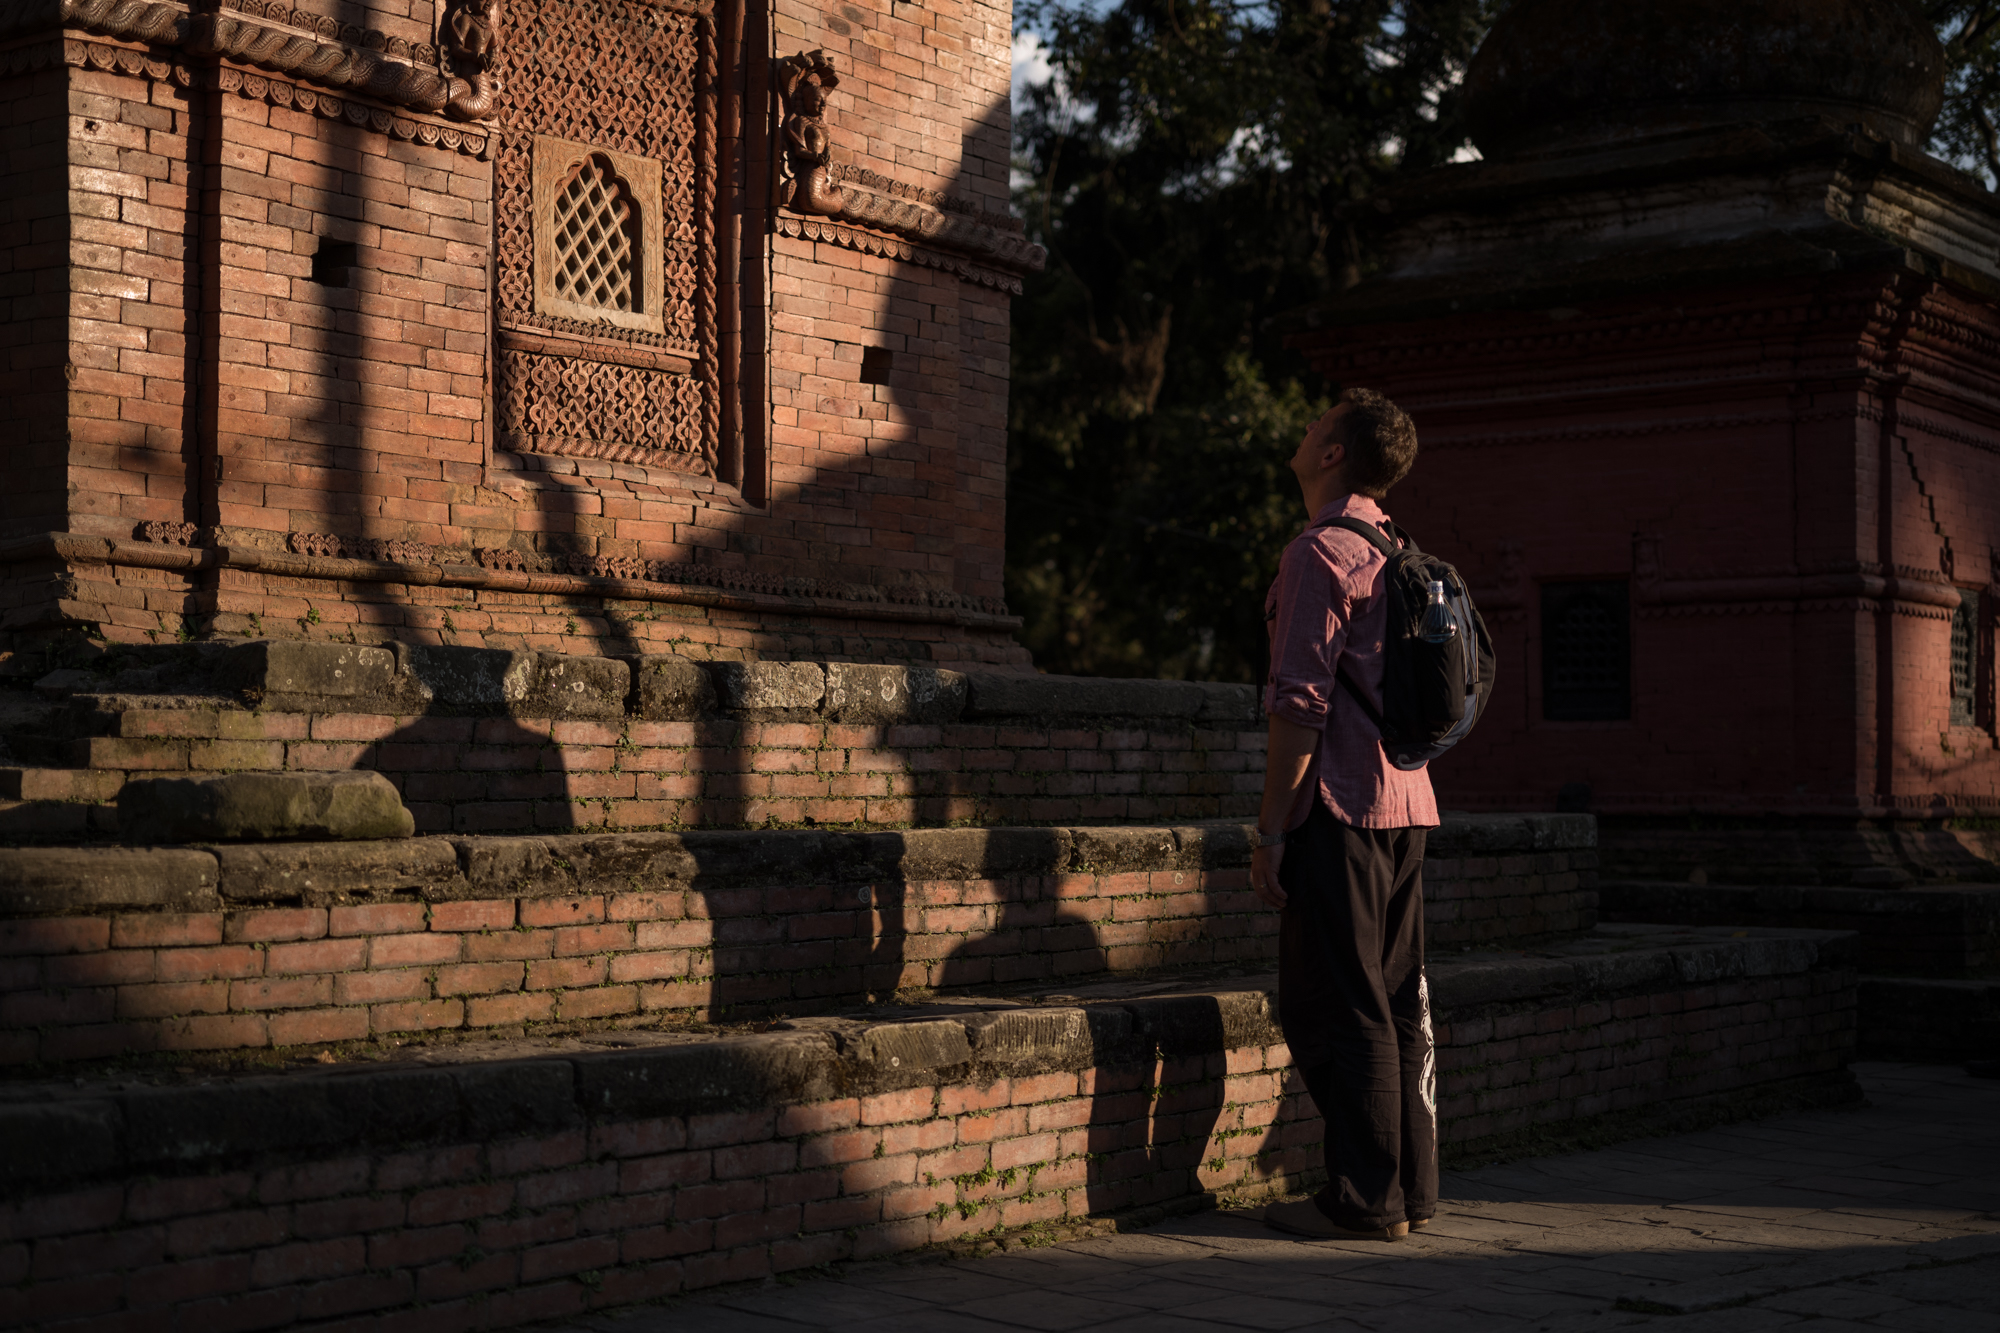 Nepal_Phill O'Leary_42_20181006-L1009976.jpg